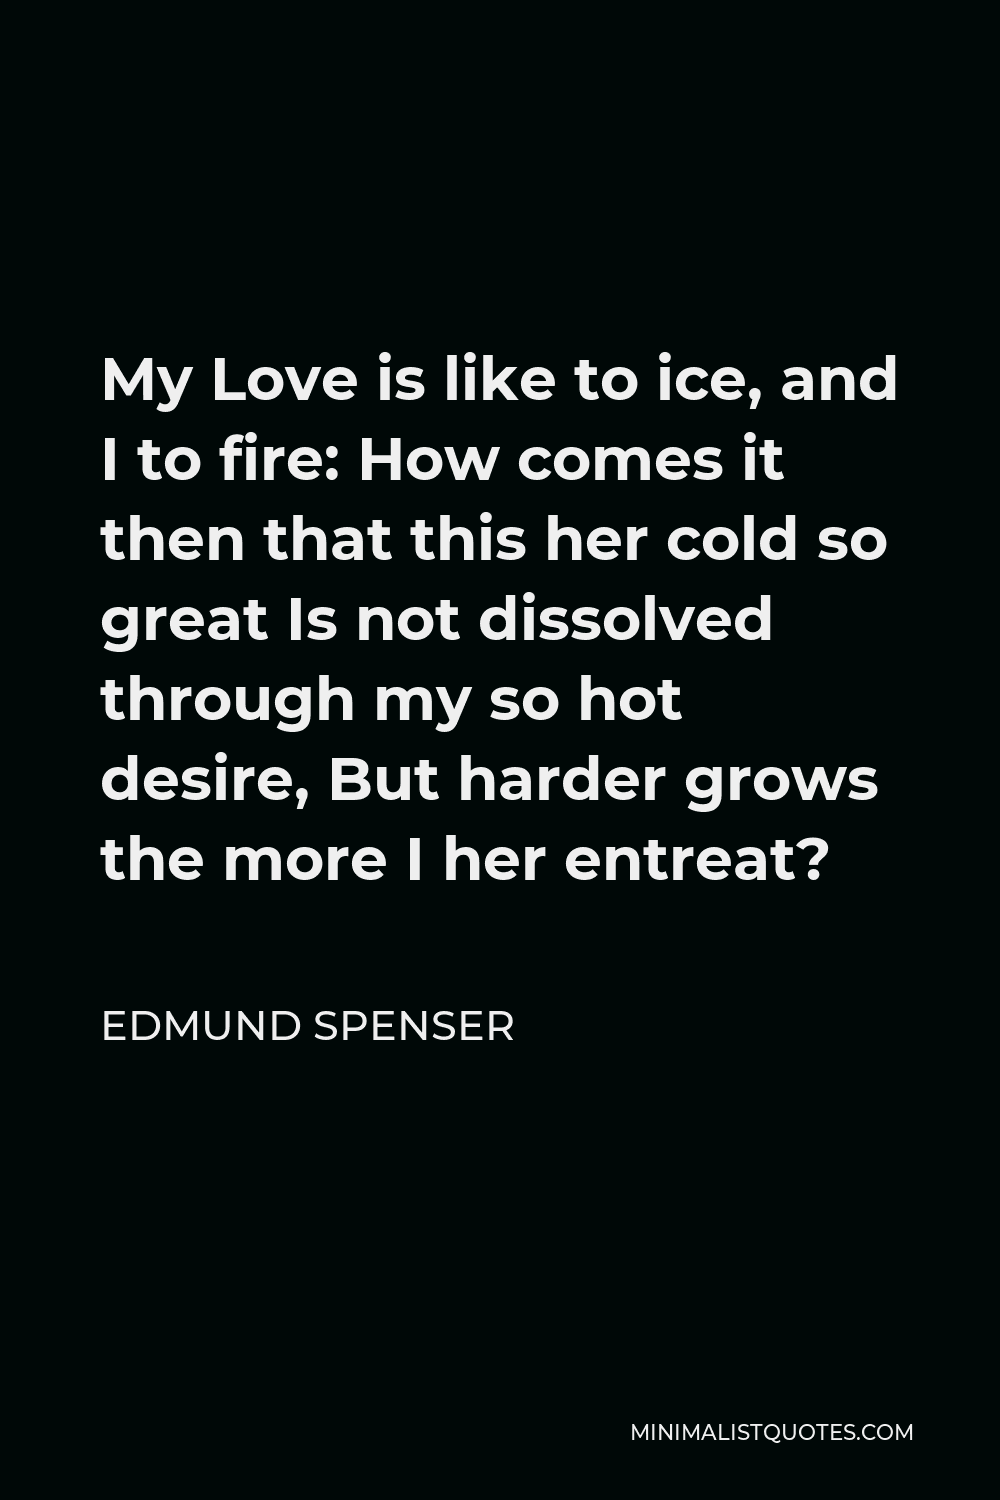 Edmund Spenser Quote - My Love is like to ice, and I to fire: How comes it then that this her cold so great Is not dissolved through my so hot desire, But harder grows the more I her entreat?